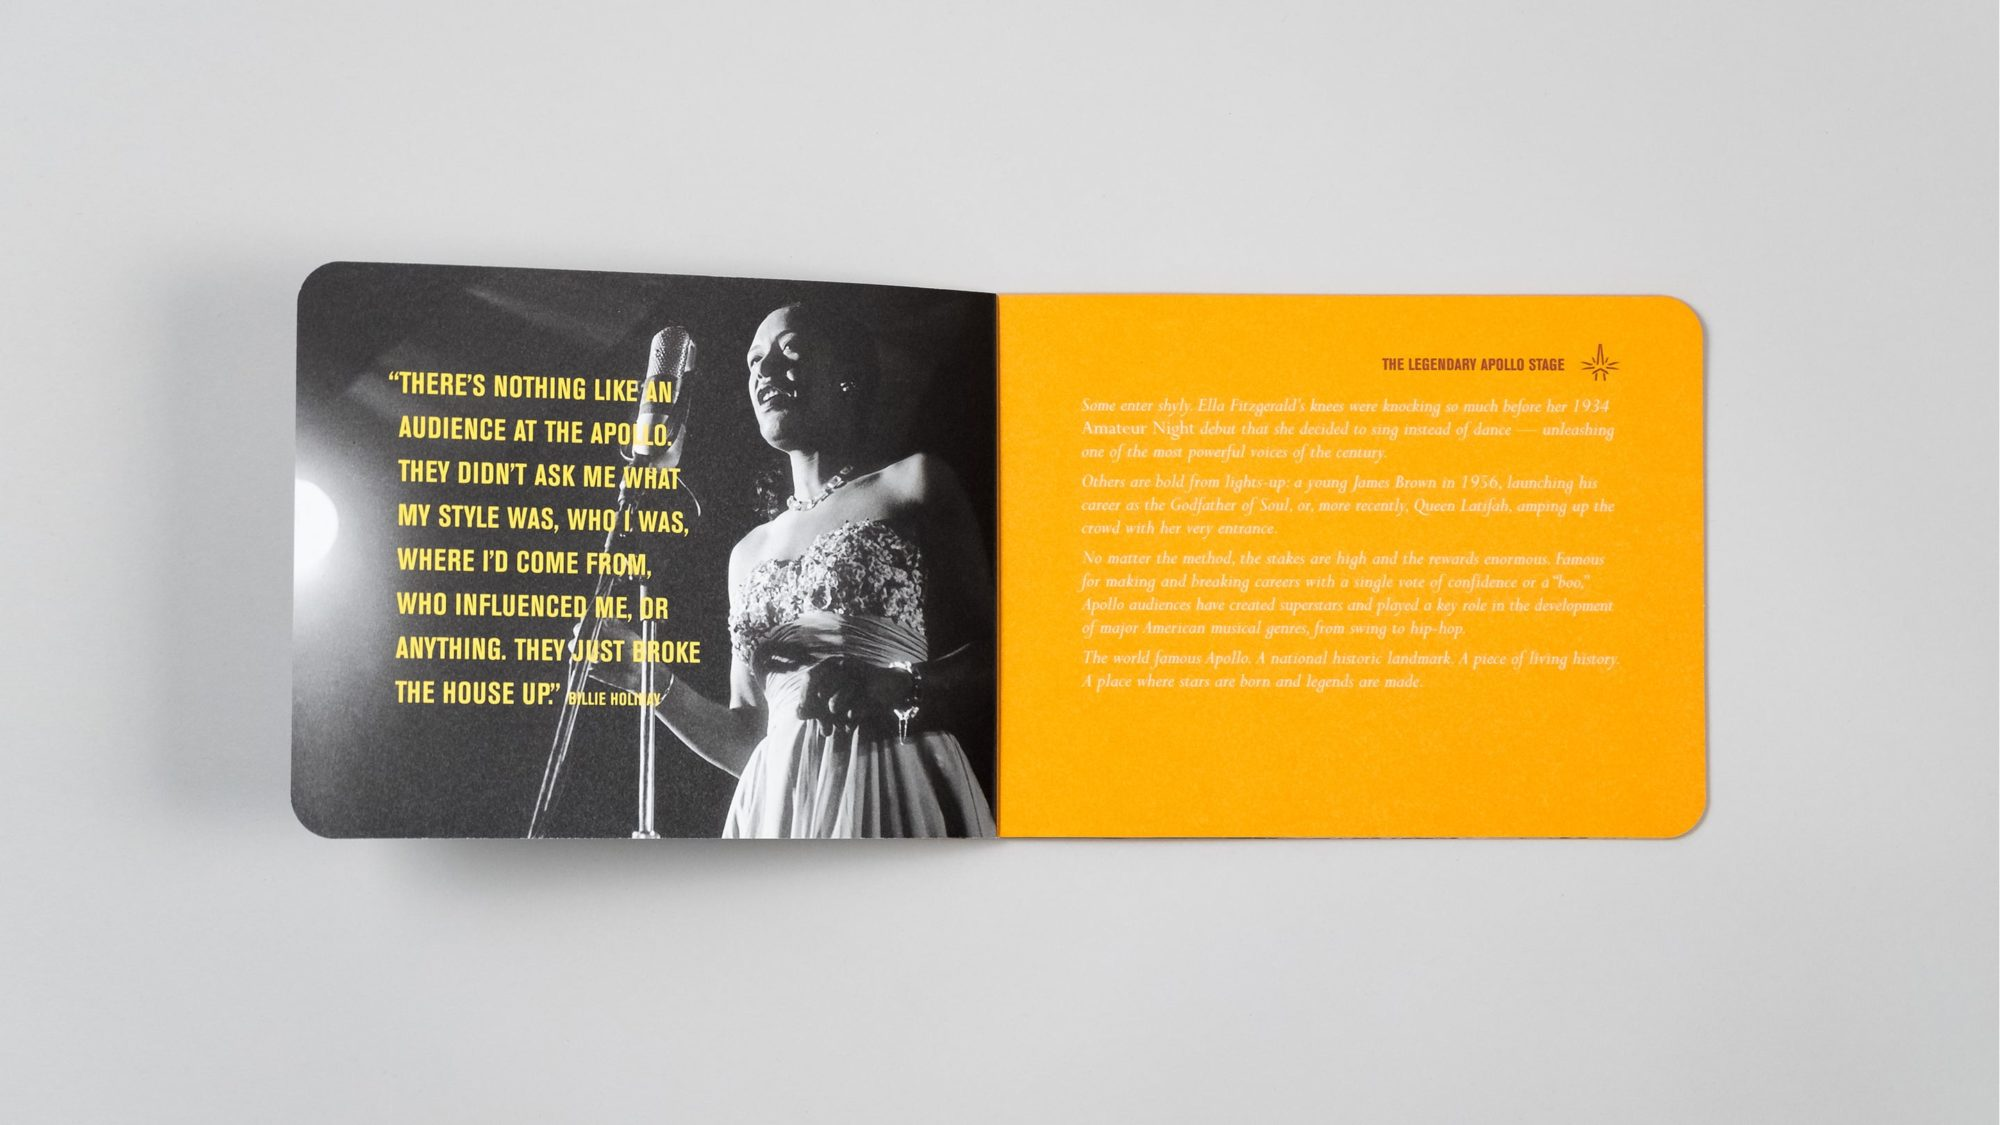 Interior spread with striking image of Billie Holiday on stage. Accompanying the image is a quote from her about what it was like to perform at the Apollo Theater